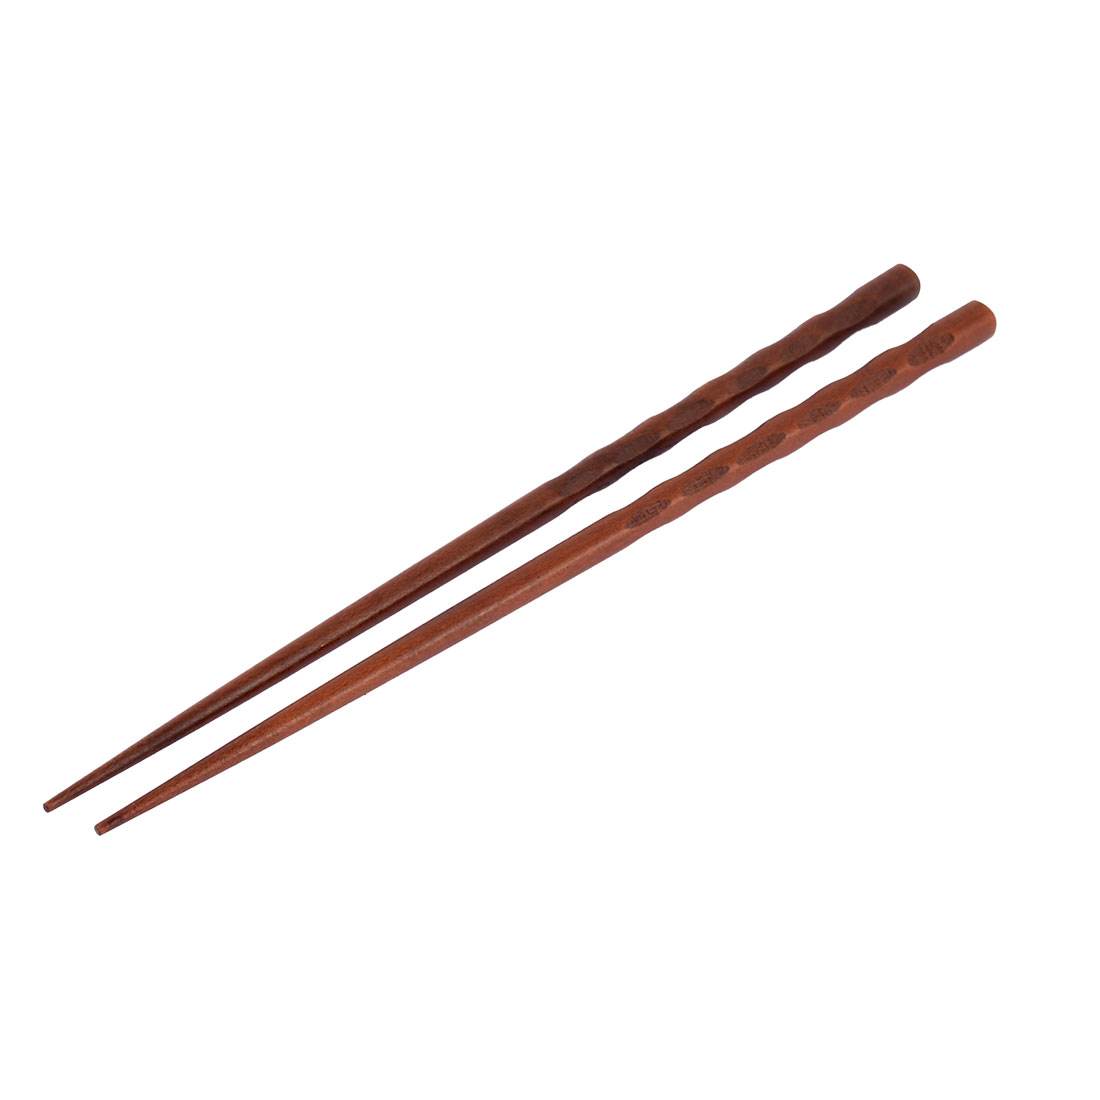 Kitchen Resterant Tableware Noodle Wooden Chopsticks Brown 9'' Long Pair